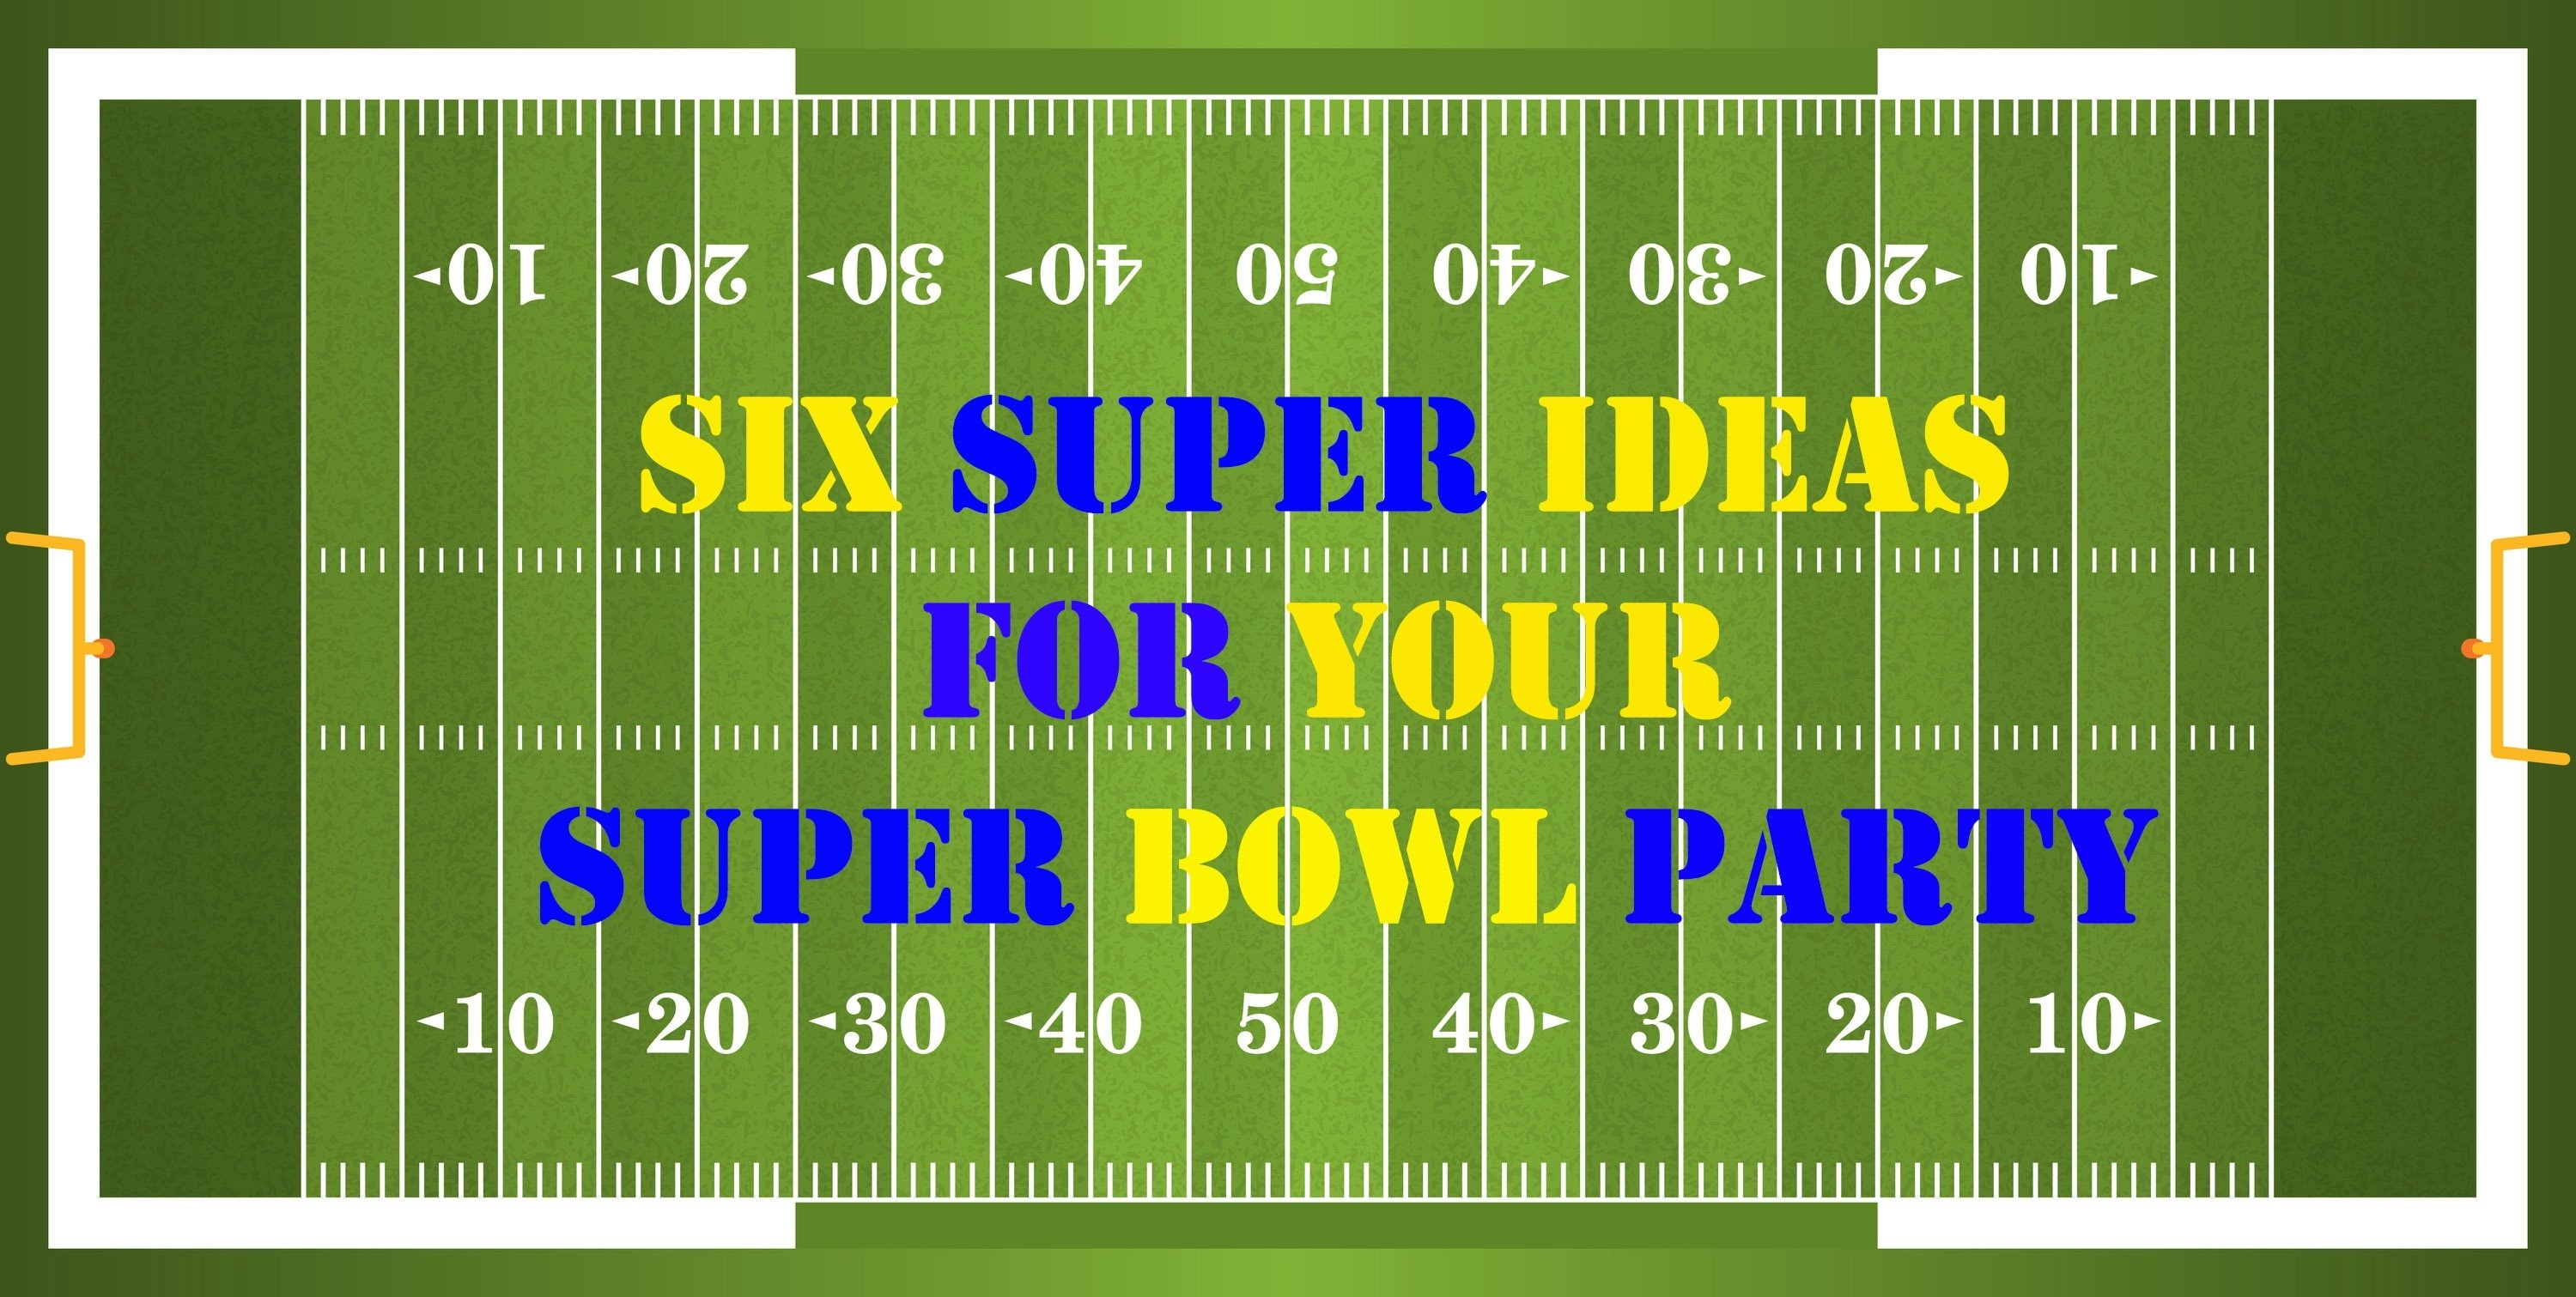 10 Perfect Super Bowl Party Games Ideas practically perfect planner the man cave six super ideas for your